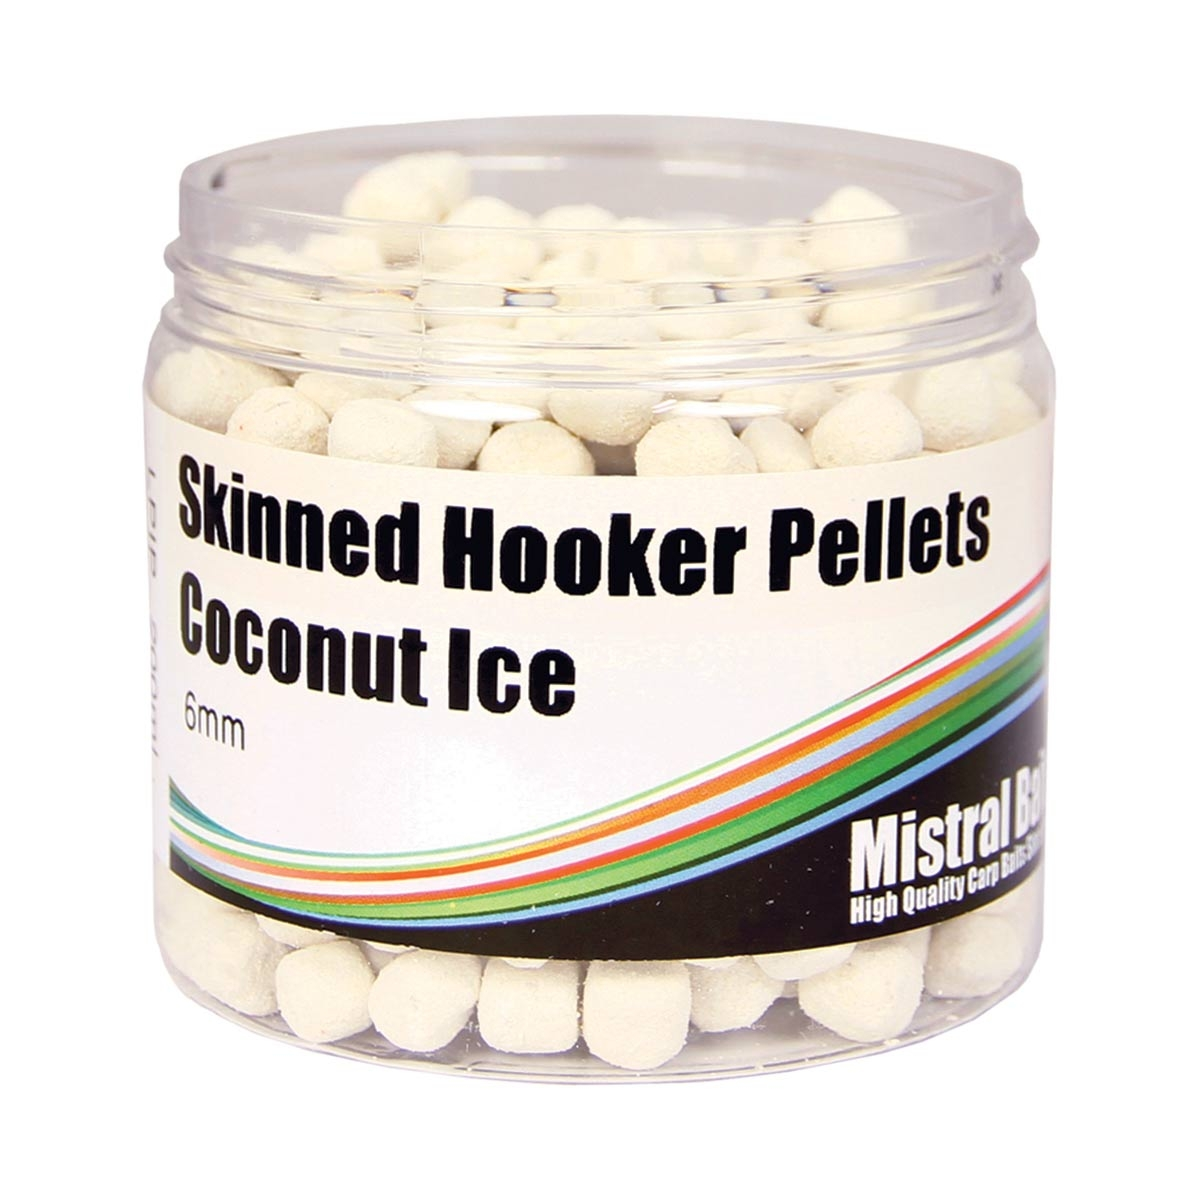 Coconut Ice Skinned Hooker Pellets